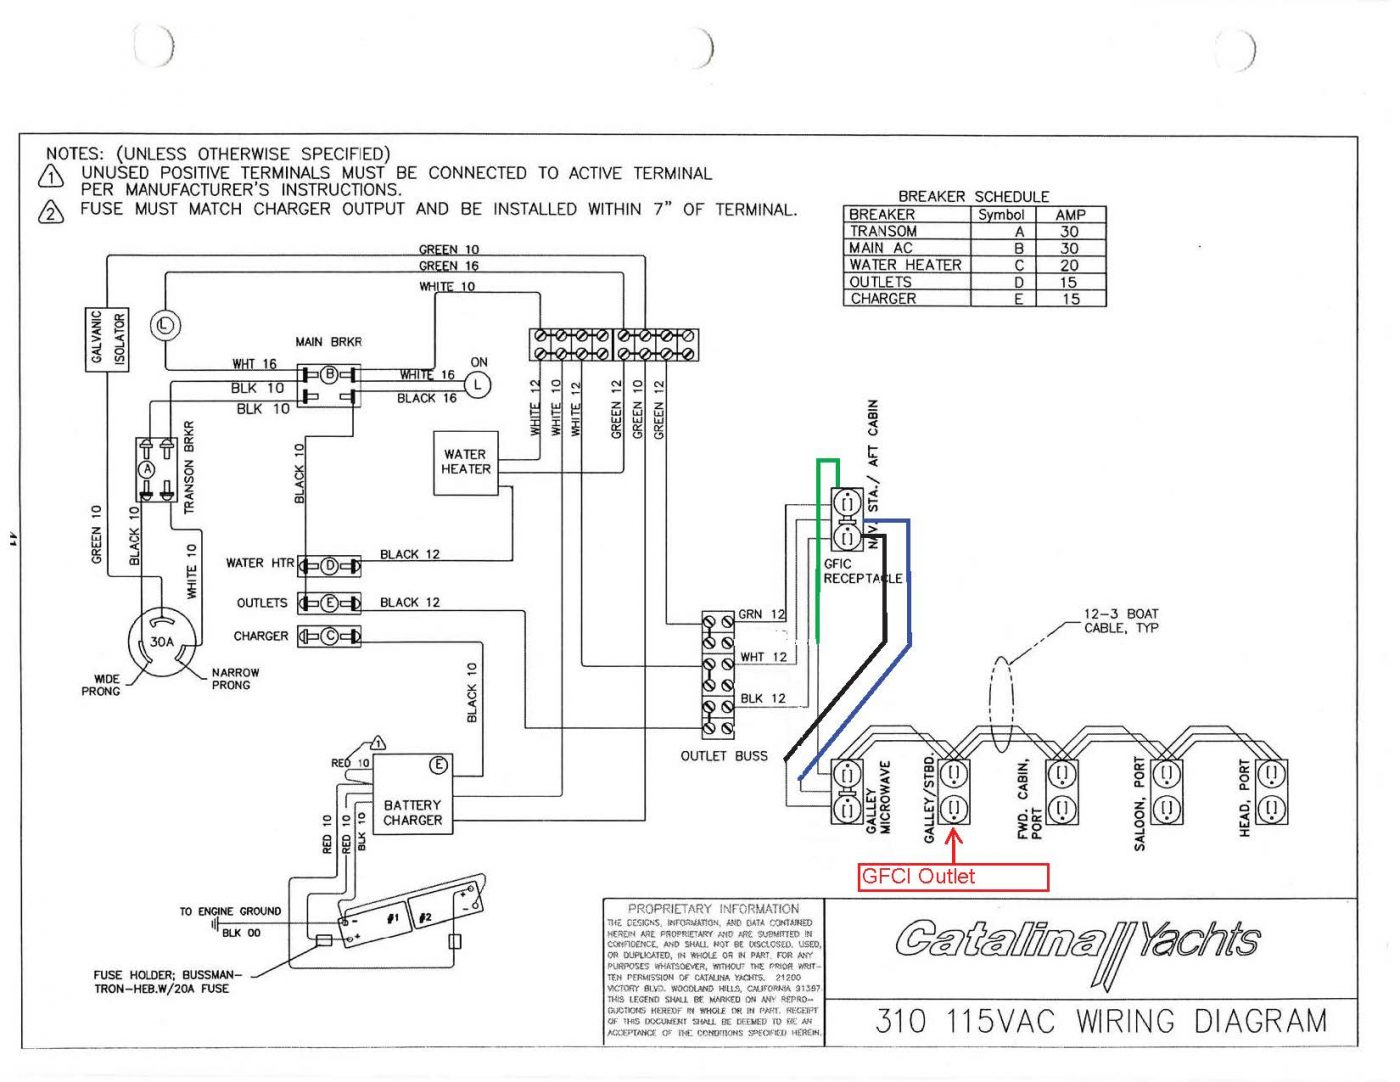 hight resolution of automotive wiring diagram pdf wiring diagram gocar air conditioning system wiring diagram pdf gallery automotive wiring